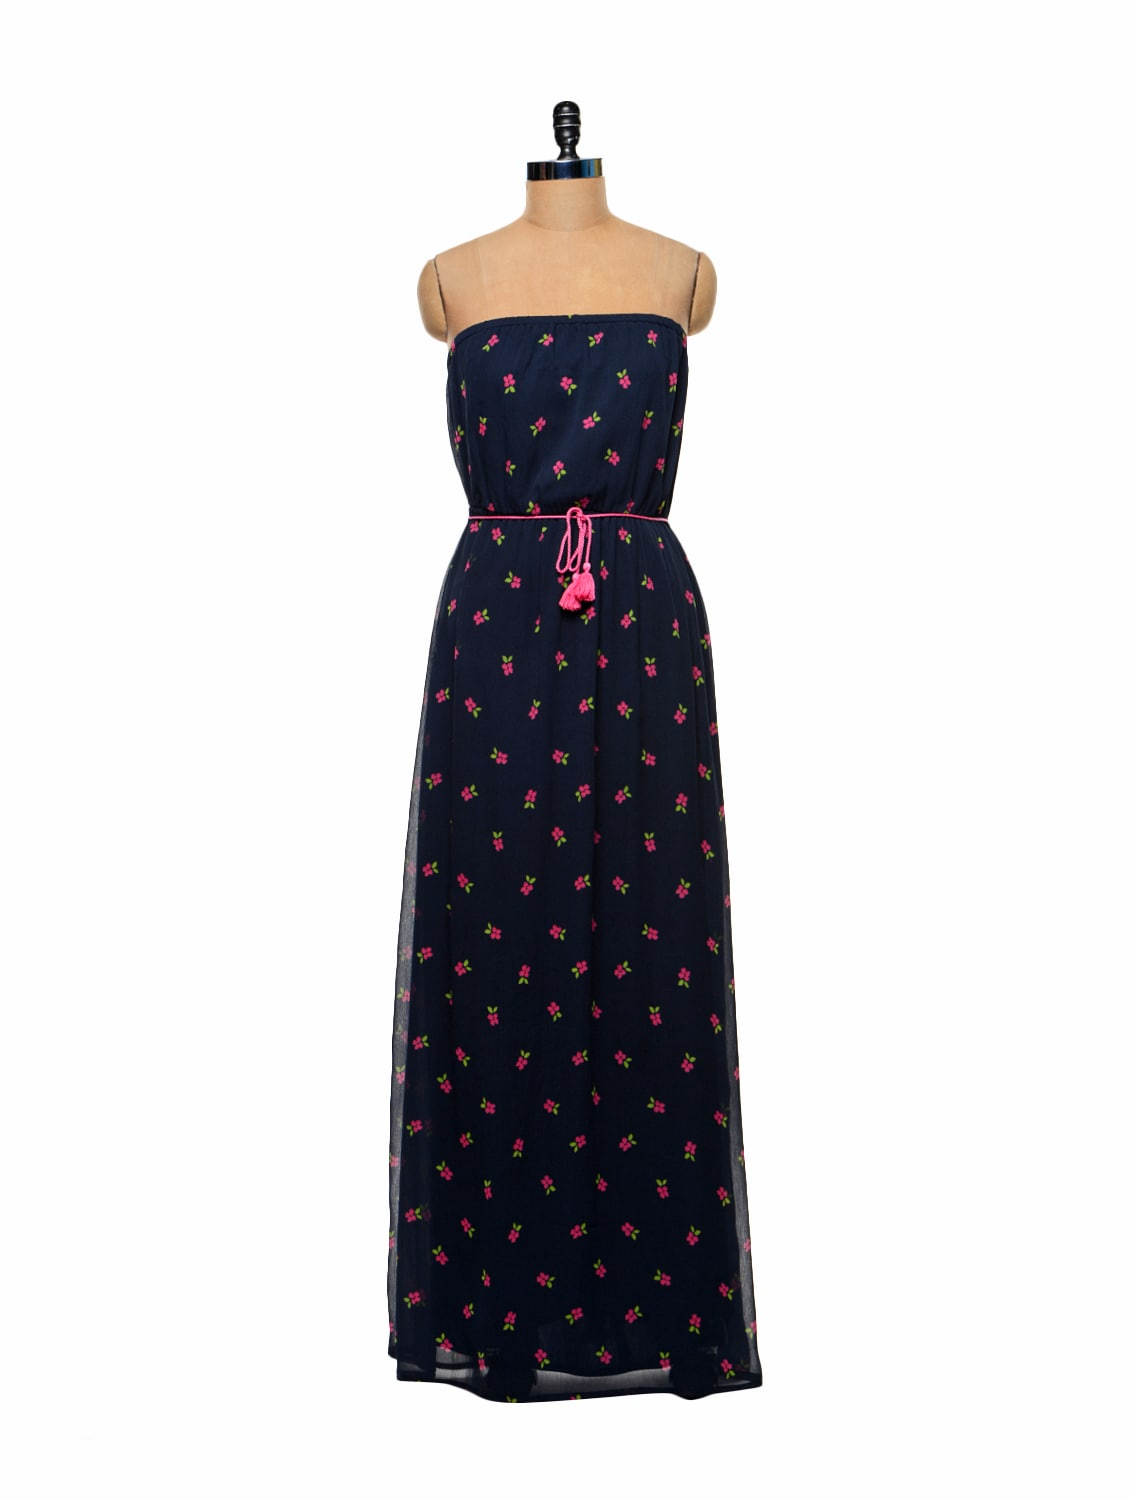 40398cd914d Navy Blue Tube Maxi Dress - STREET 9 Best Deals With Price ...